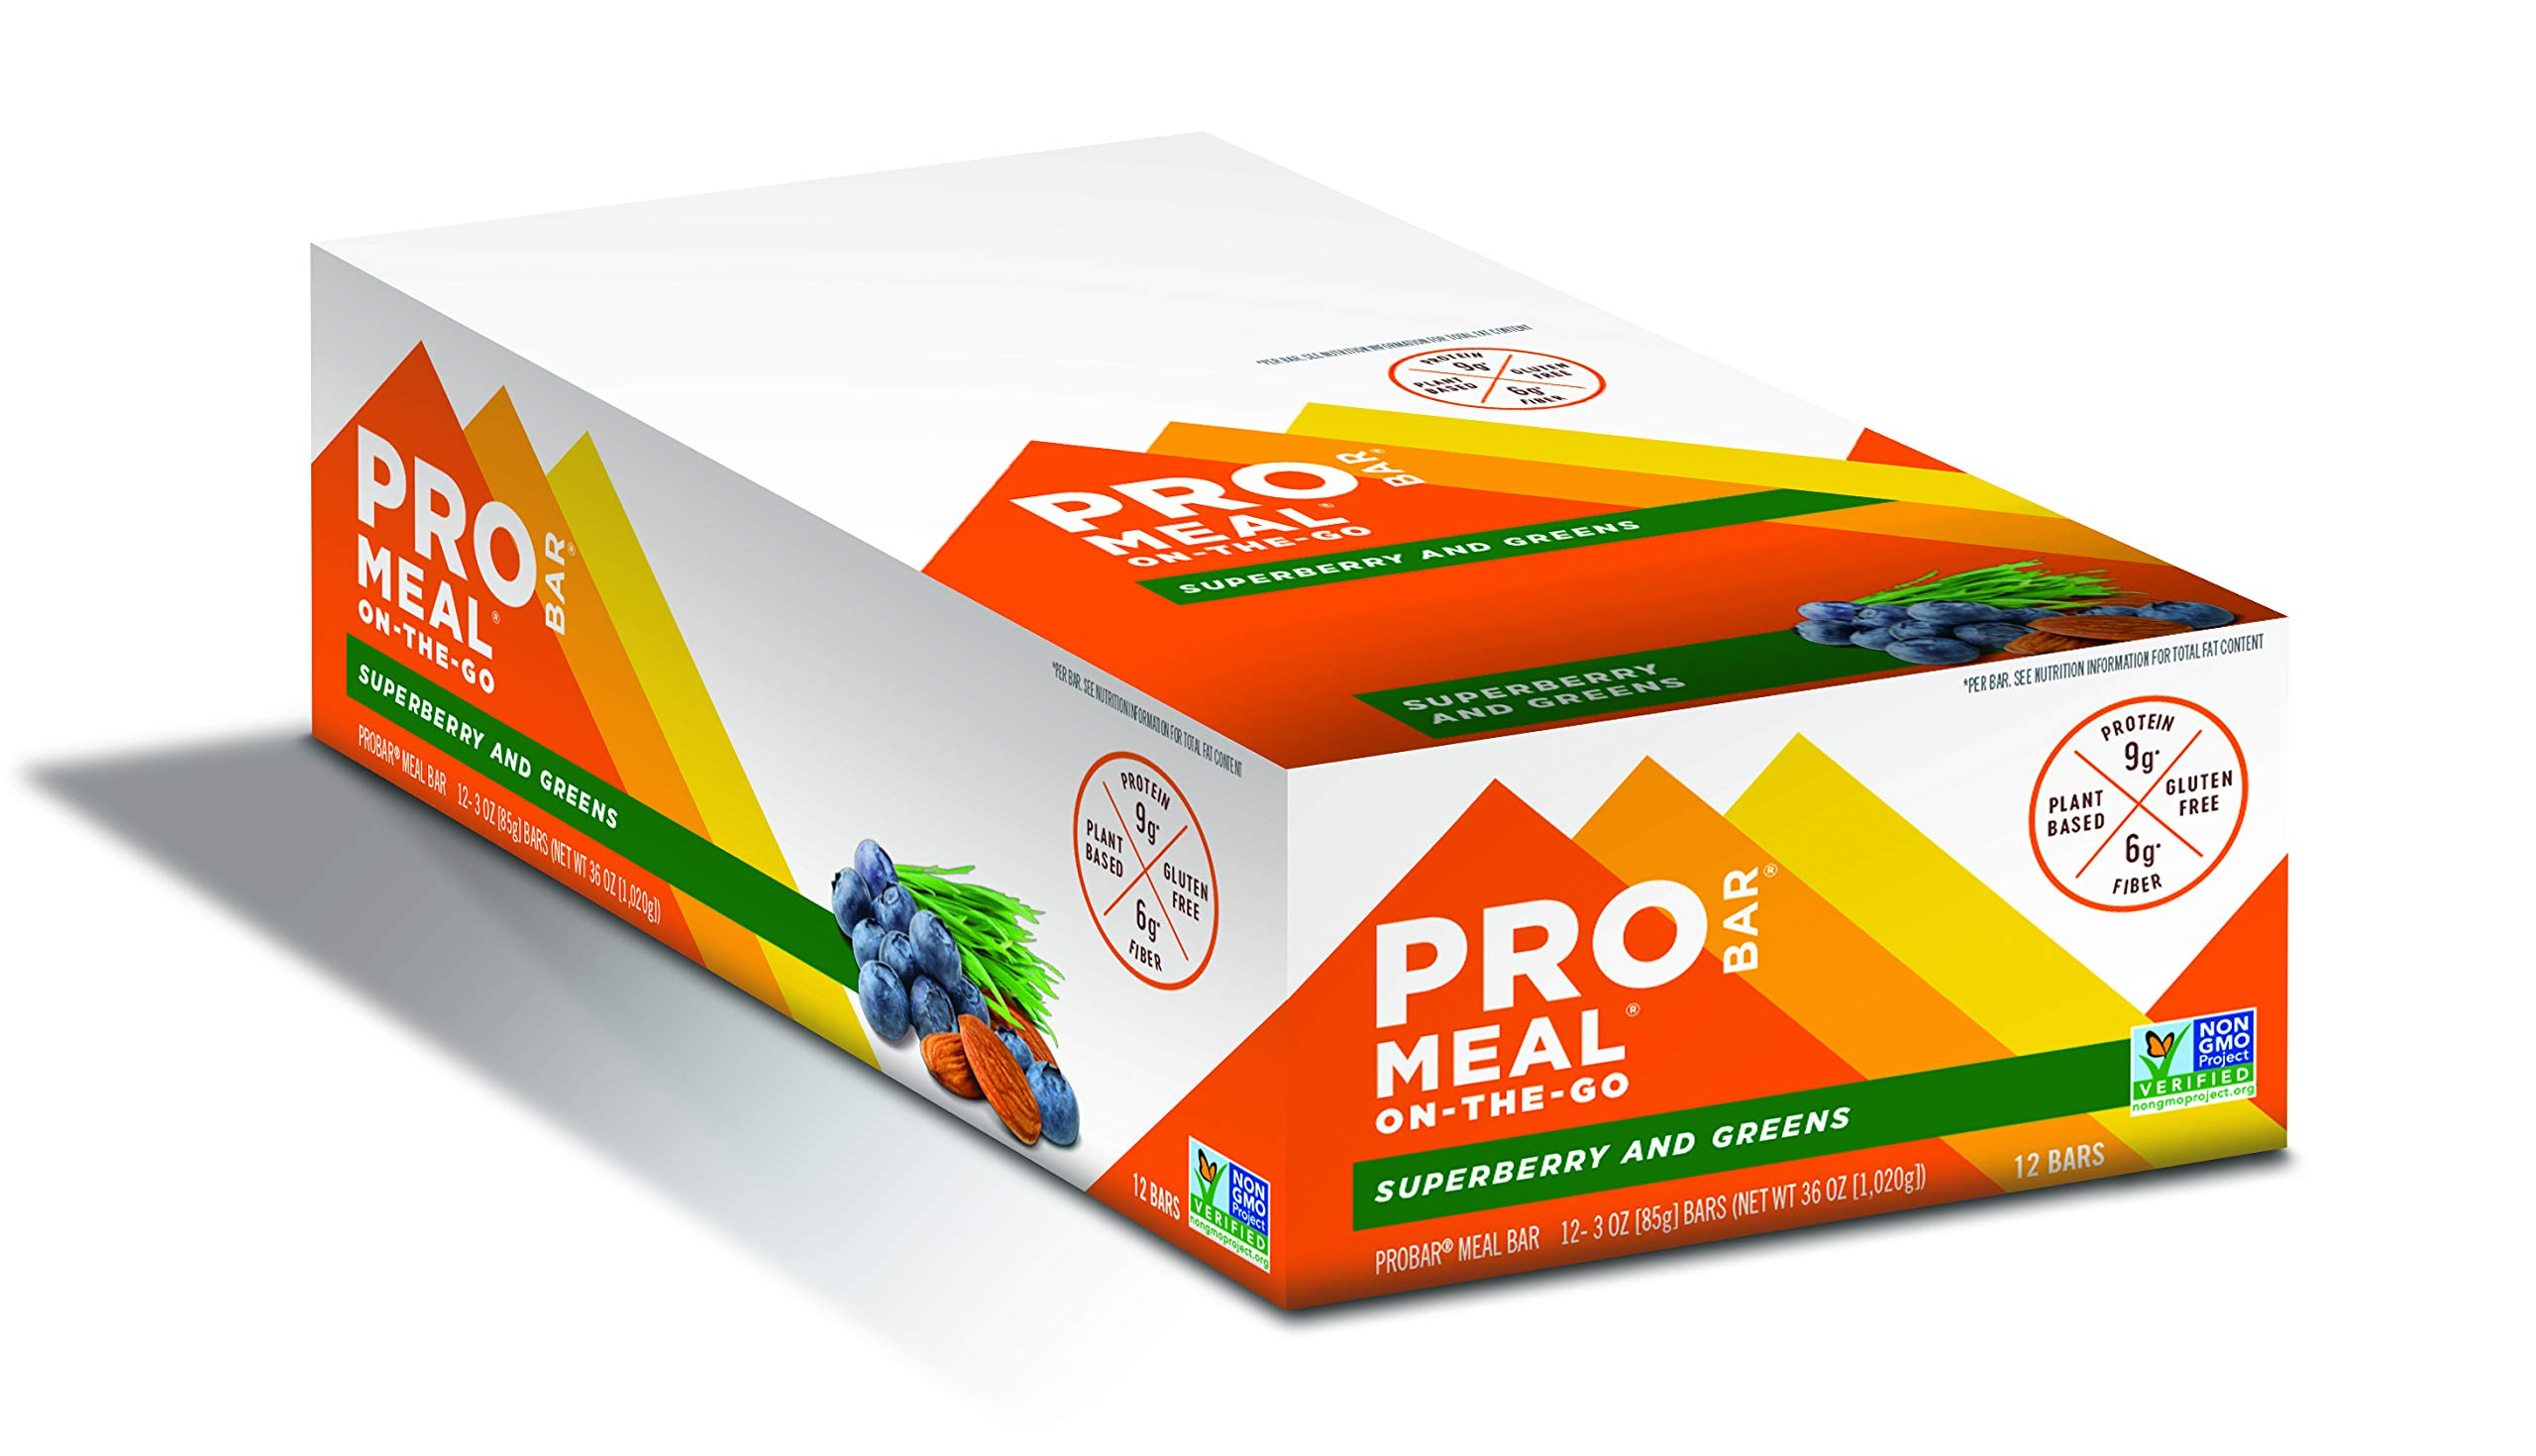 PROBAR - Meal Bar, Superberry and Greens, Non-GMO, Gluten-Free, Certified Organic, Healthy, Plant-Based Whole Food Ingredients, Natural Energy (12 Count)